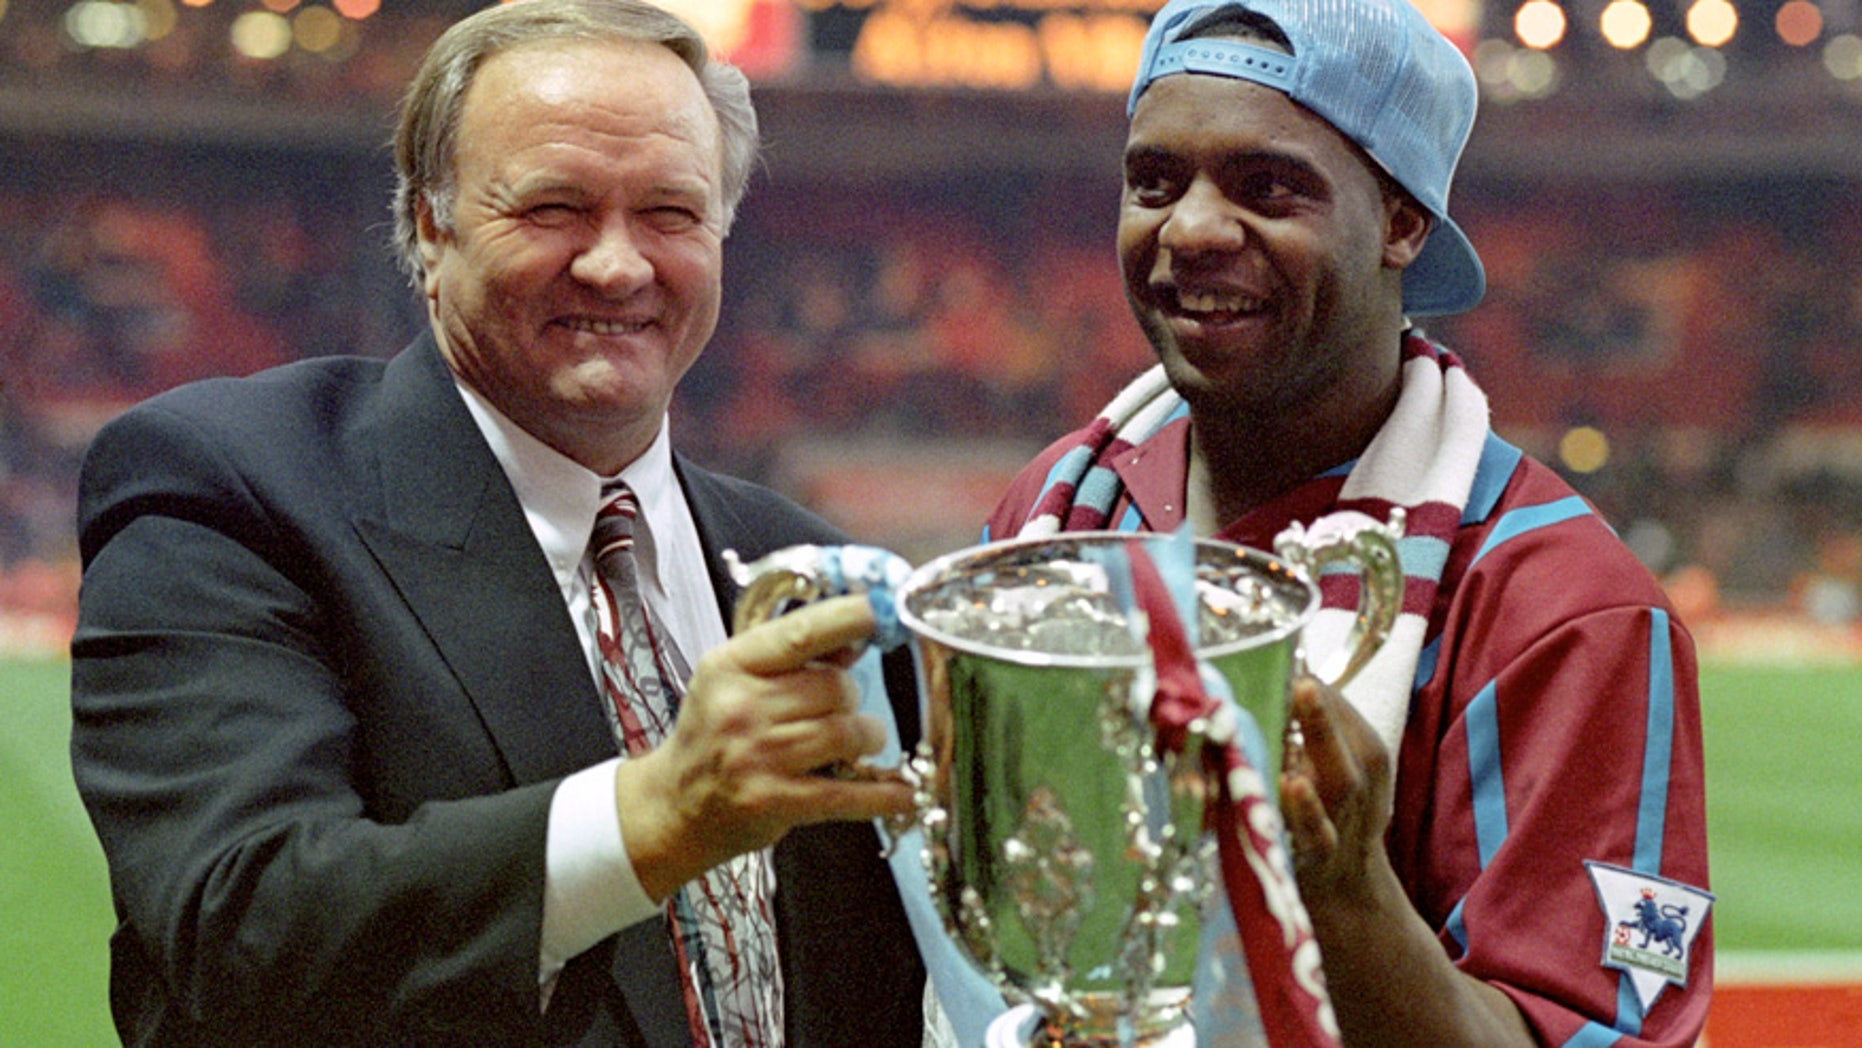 March 27, 1994: Aston Villa manager Ron Atkinson holding the English League Cup with former Aston Villa player Dalian Atkinson at Wembley Stadium in London.